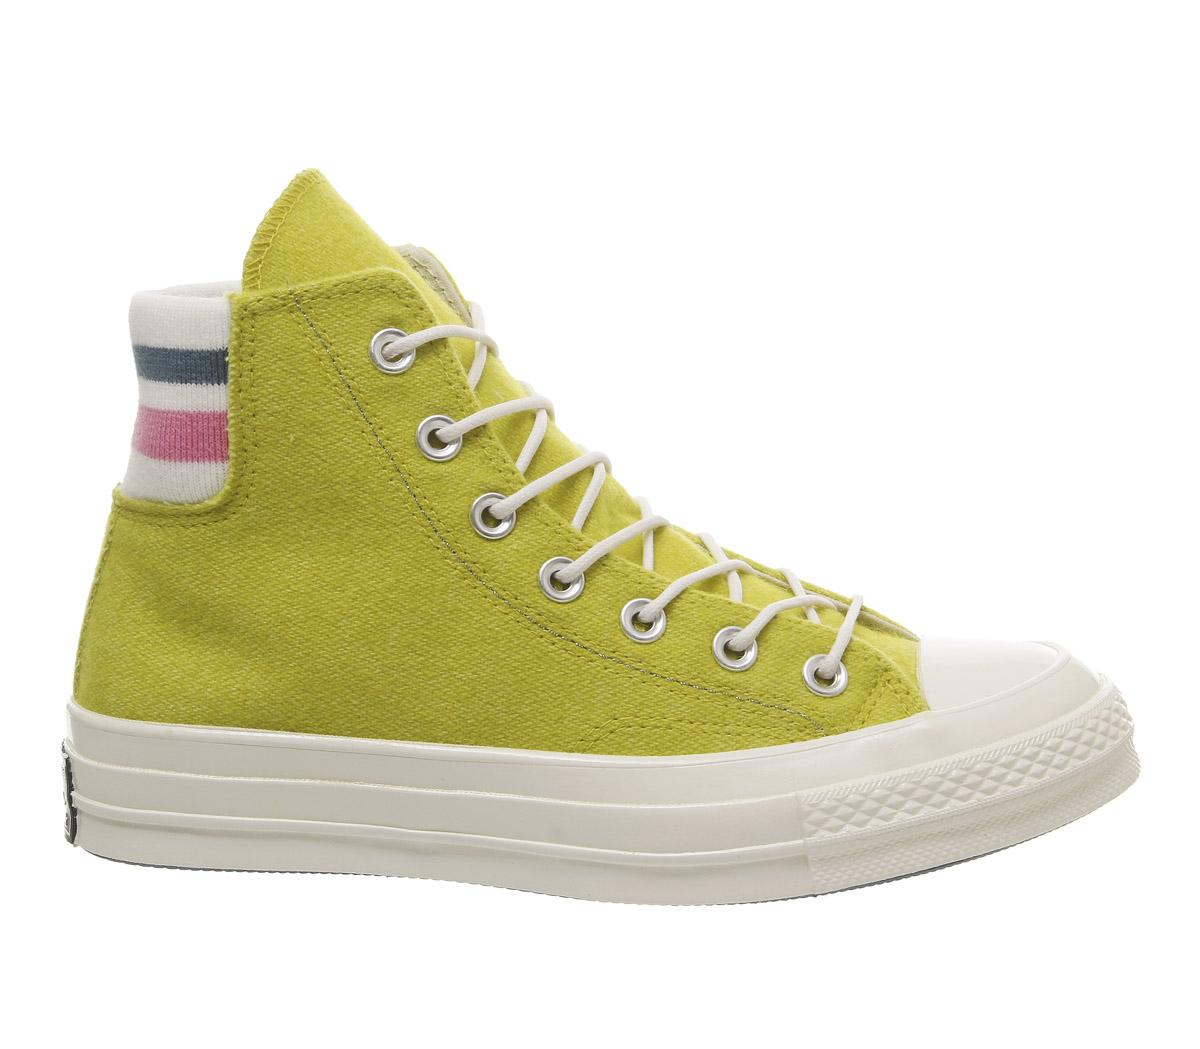 Pink Sports Bold Star Converse Citron Trainers All Hi 70's Unisex l1JcFK